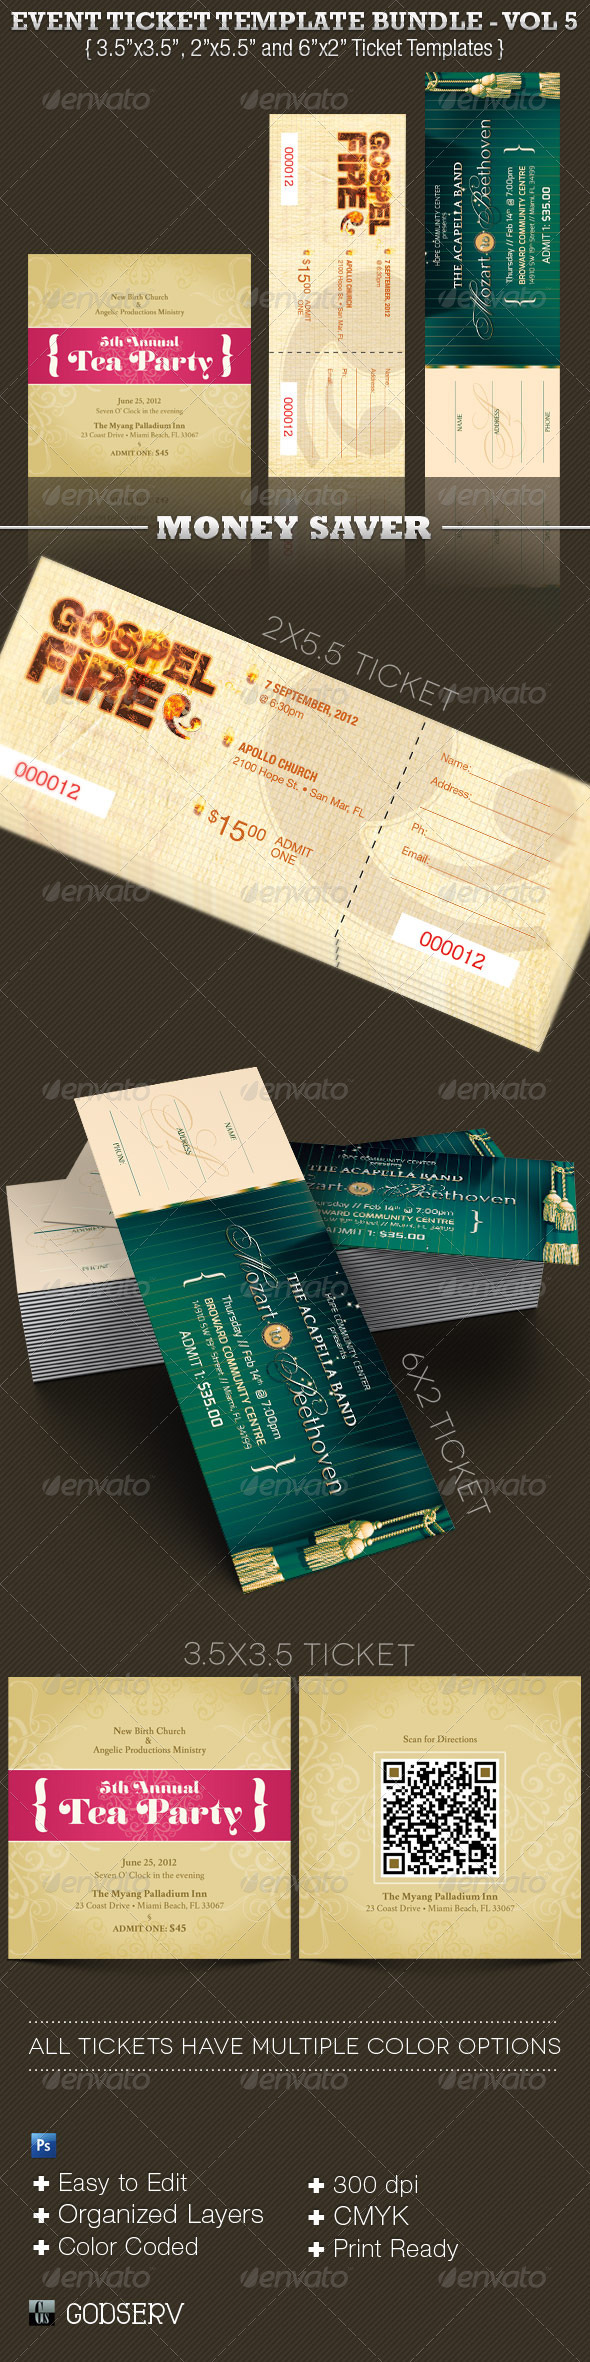 Event Ticket Template Bundle Vol 5 - Miscellaneous Print Templates